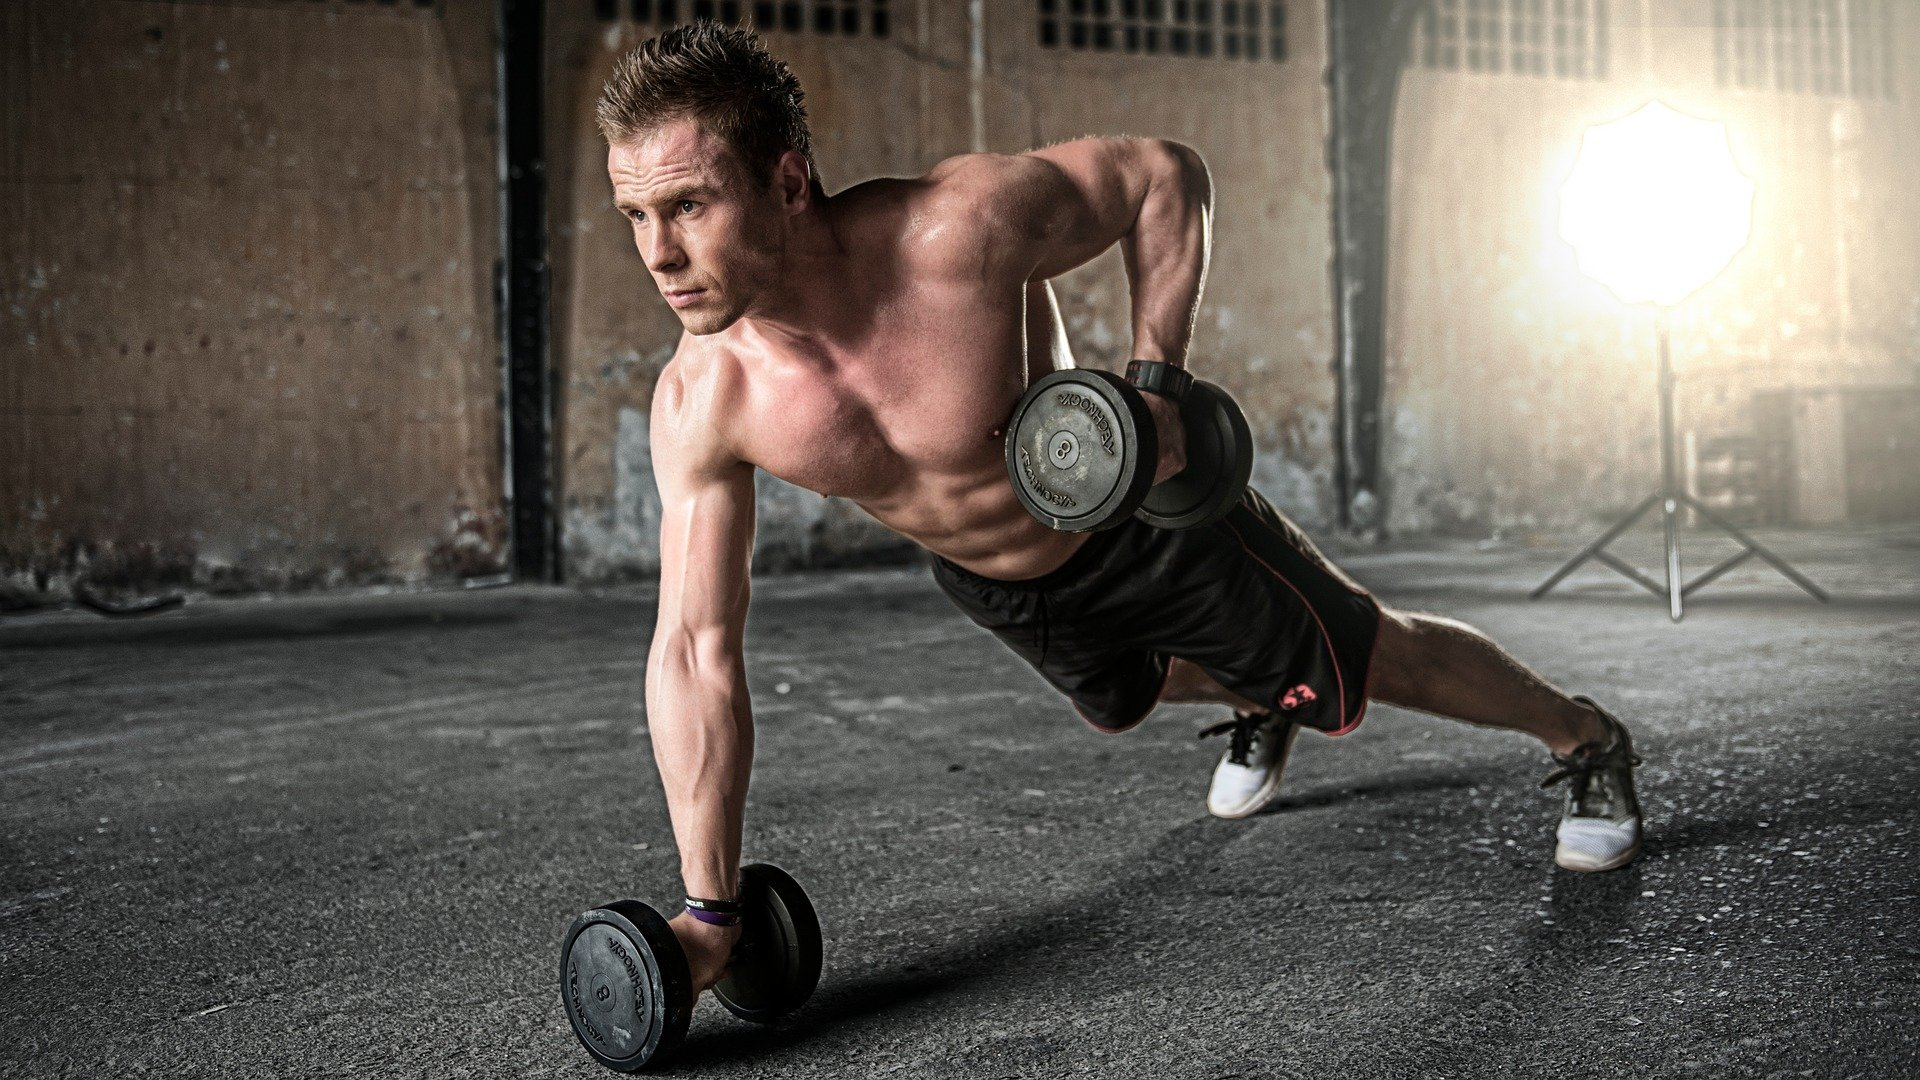 Weightlifting: Cooling Off Between Sets Leads To More Immediate Performance Gain Than Steroids